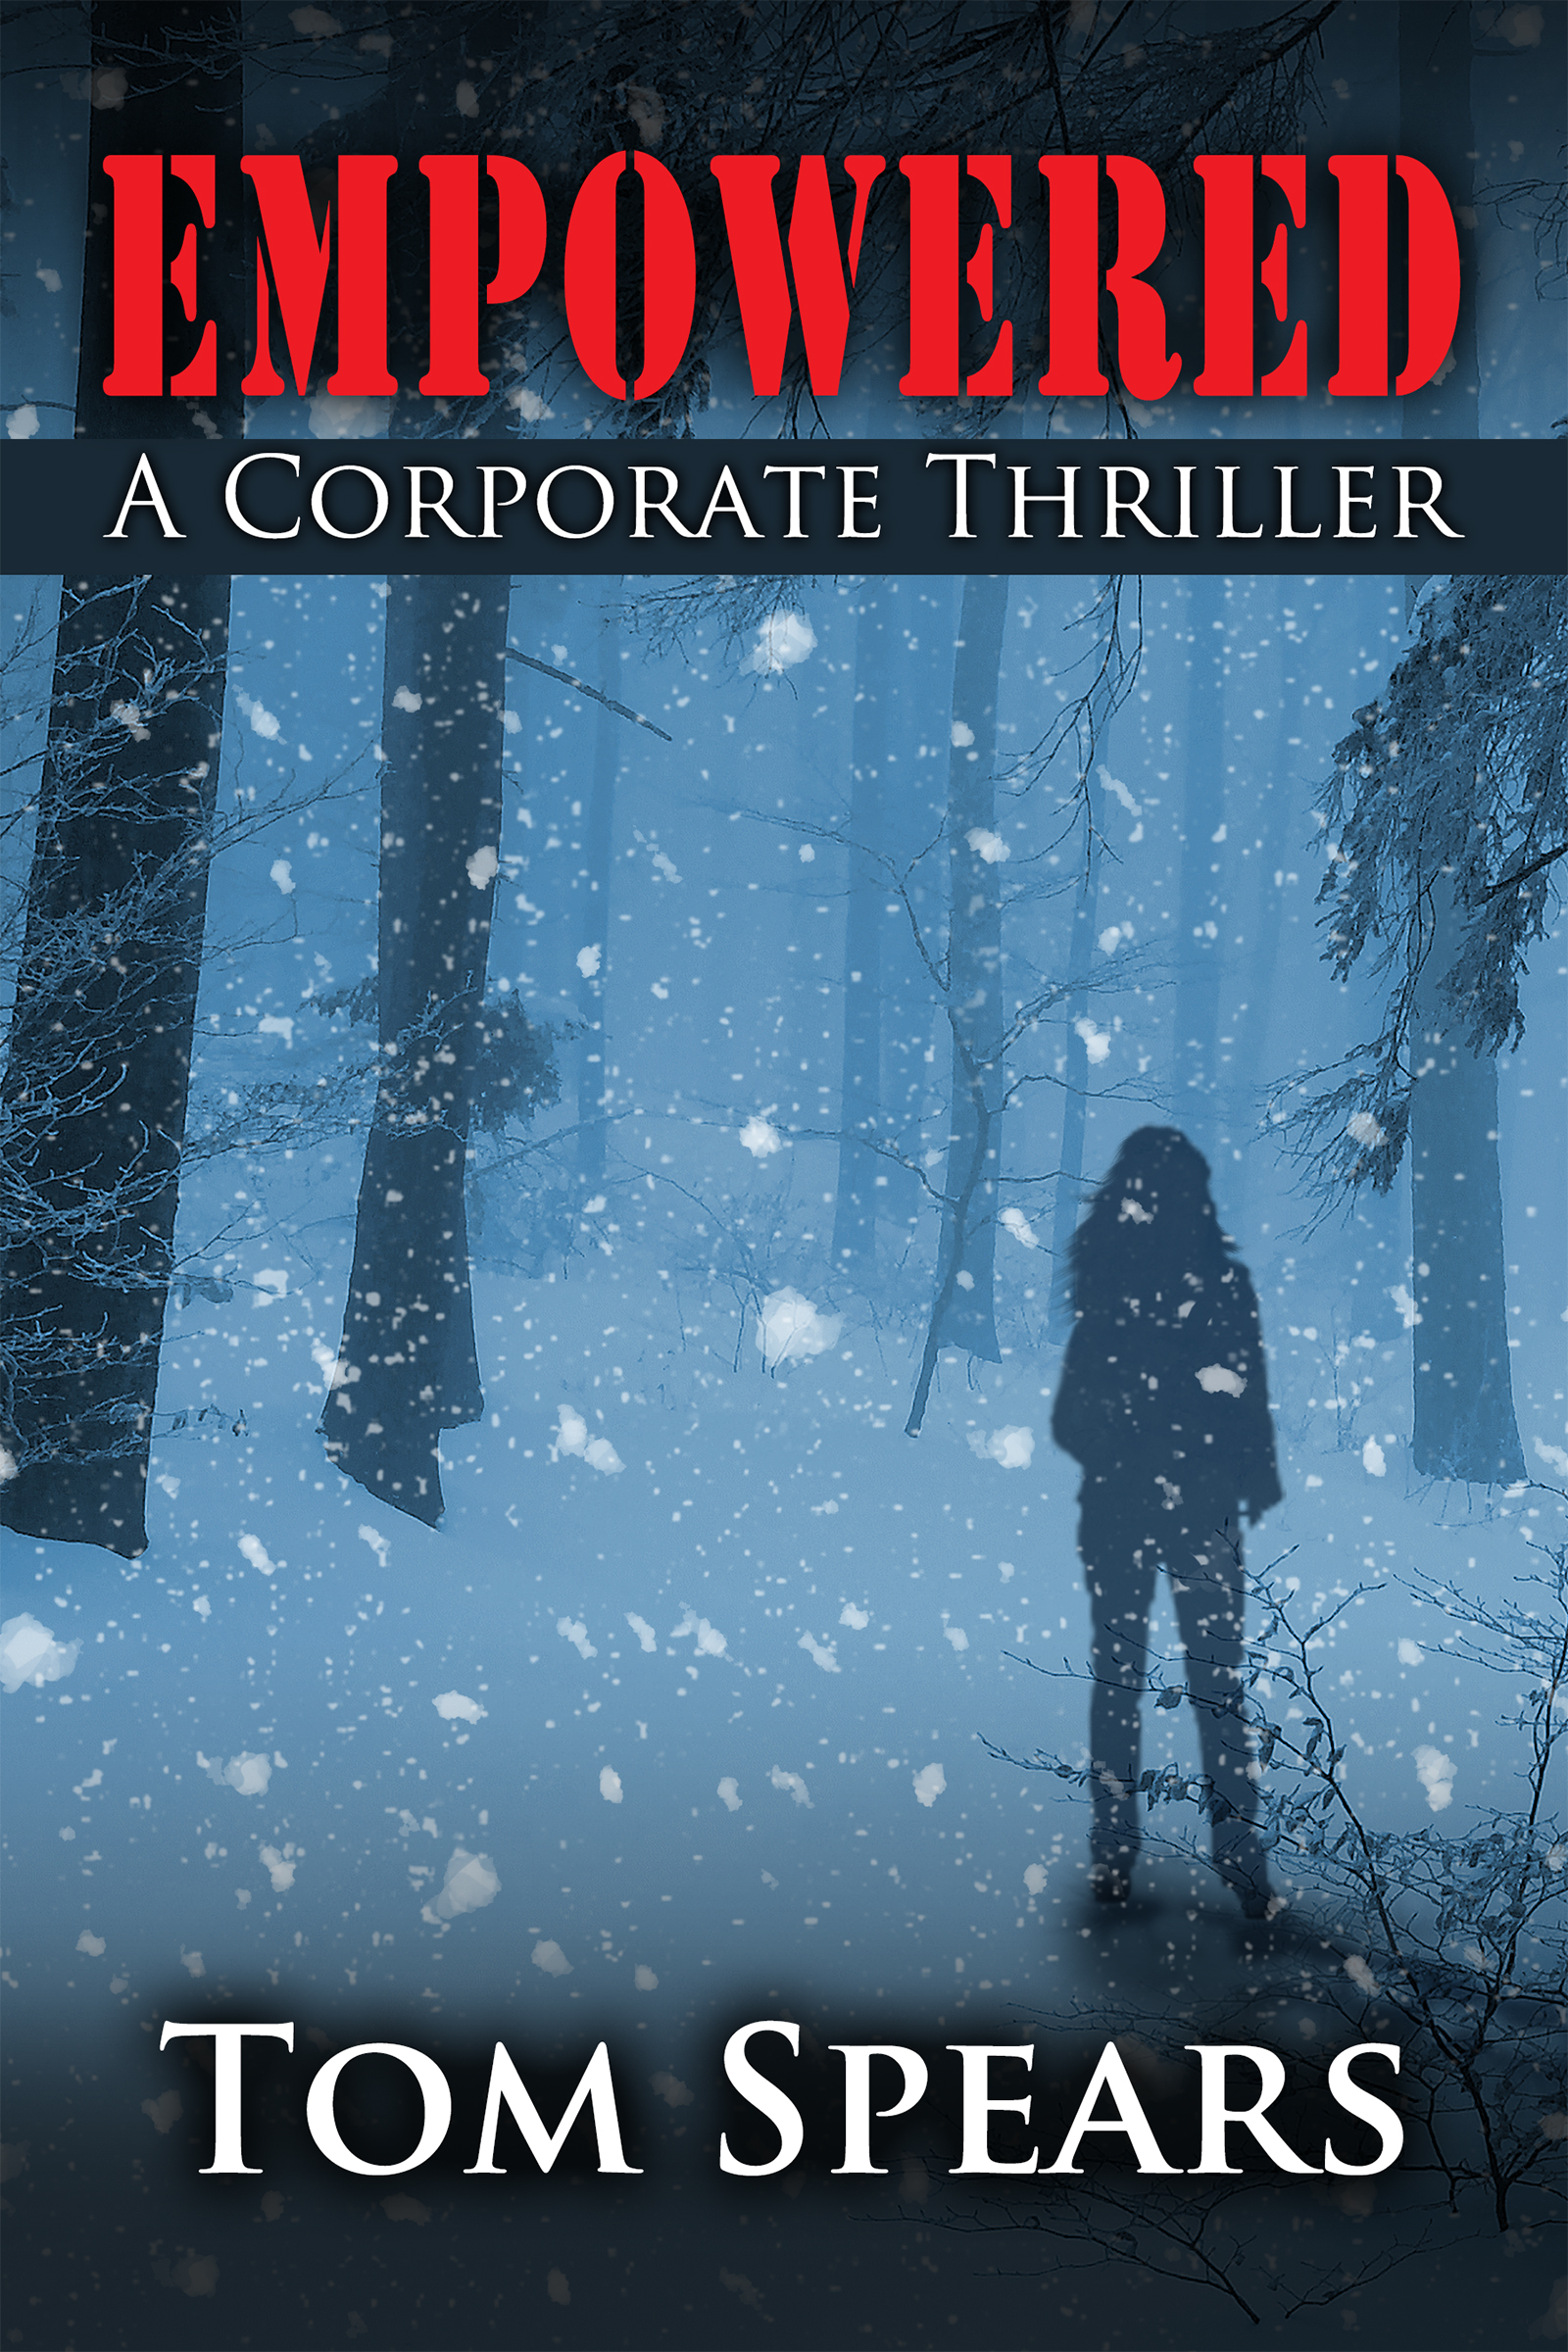 This is the final day to get a free Kindle copy of my latest novel. Click the email for details.